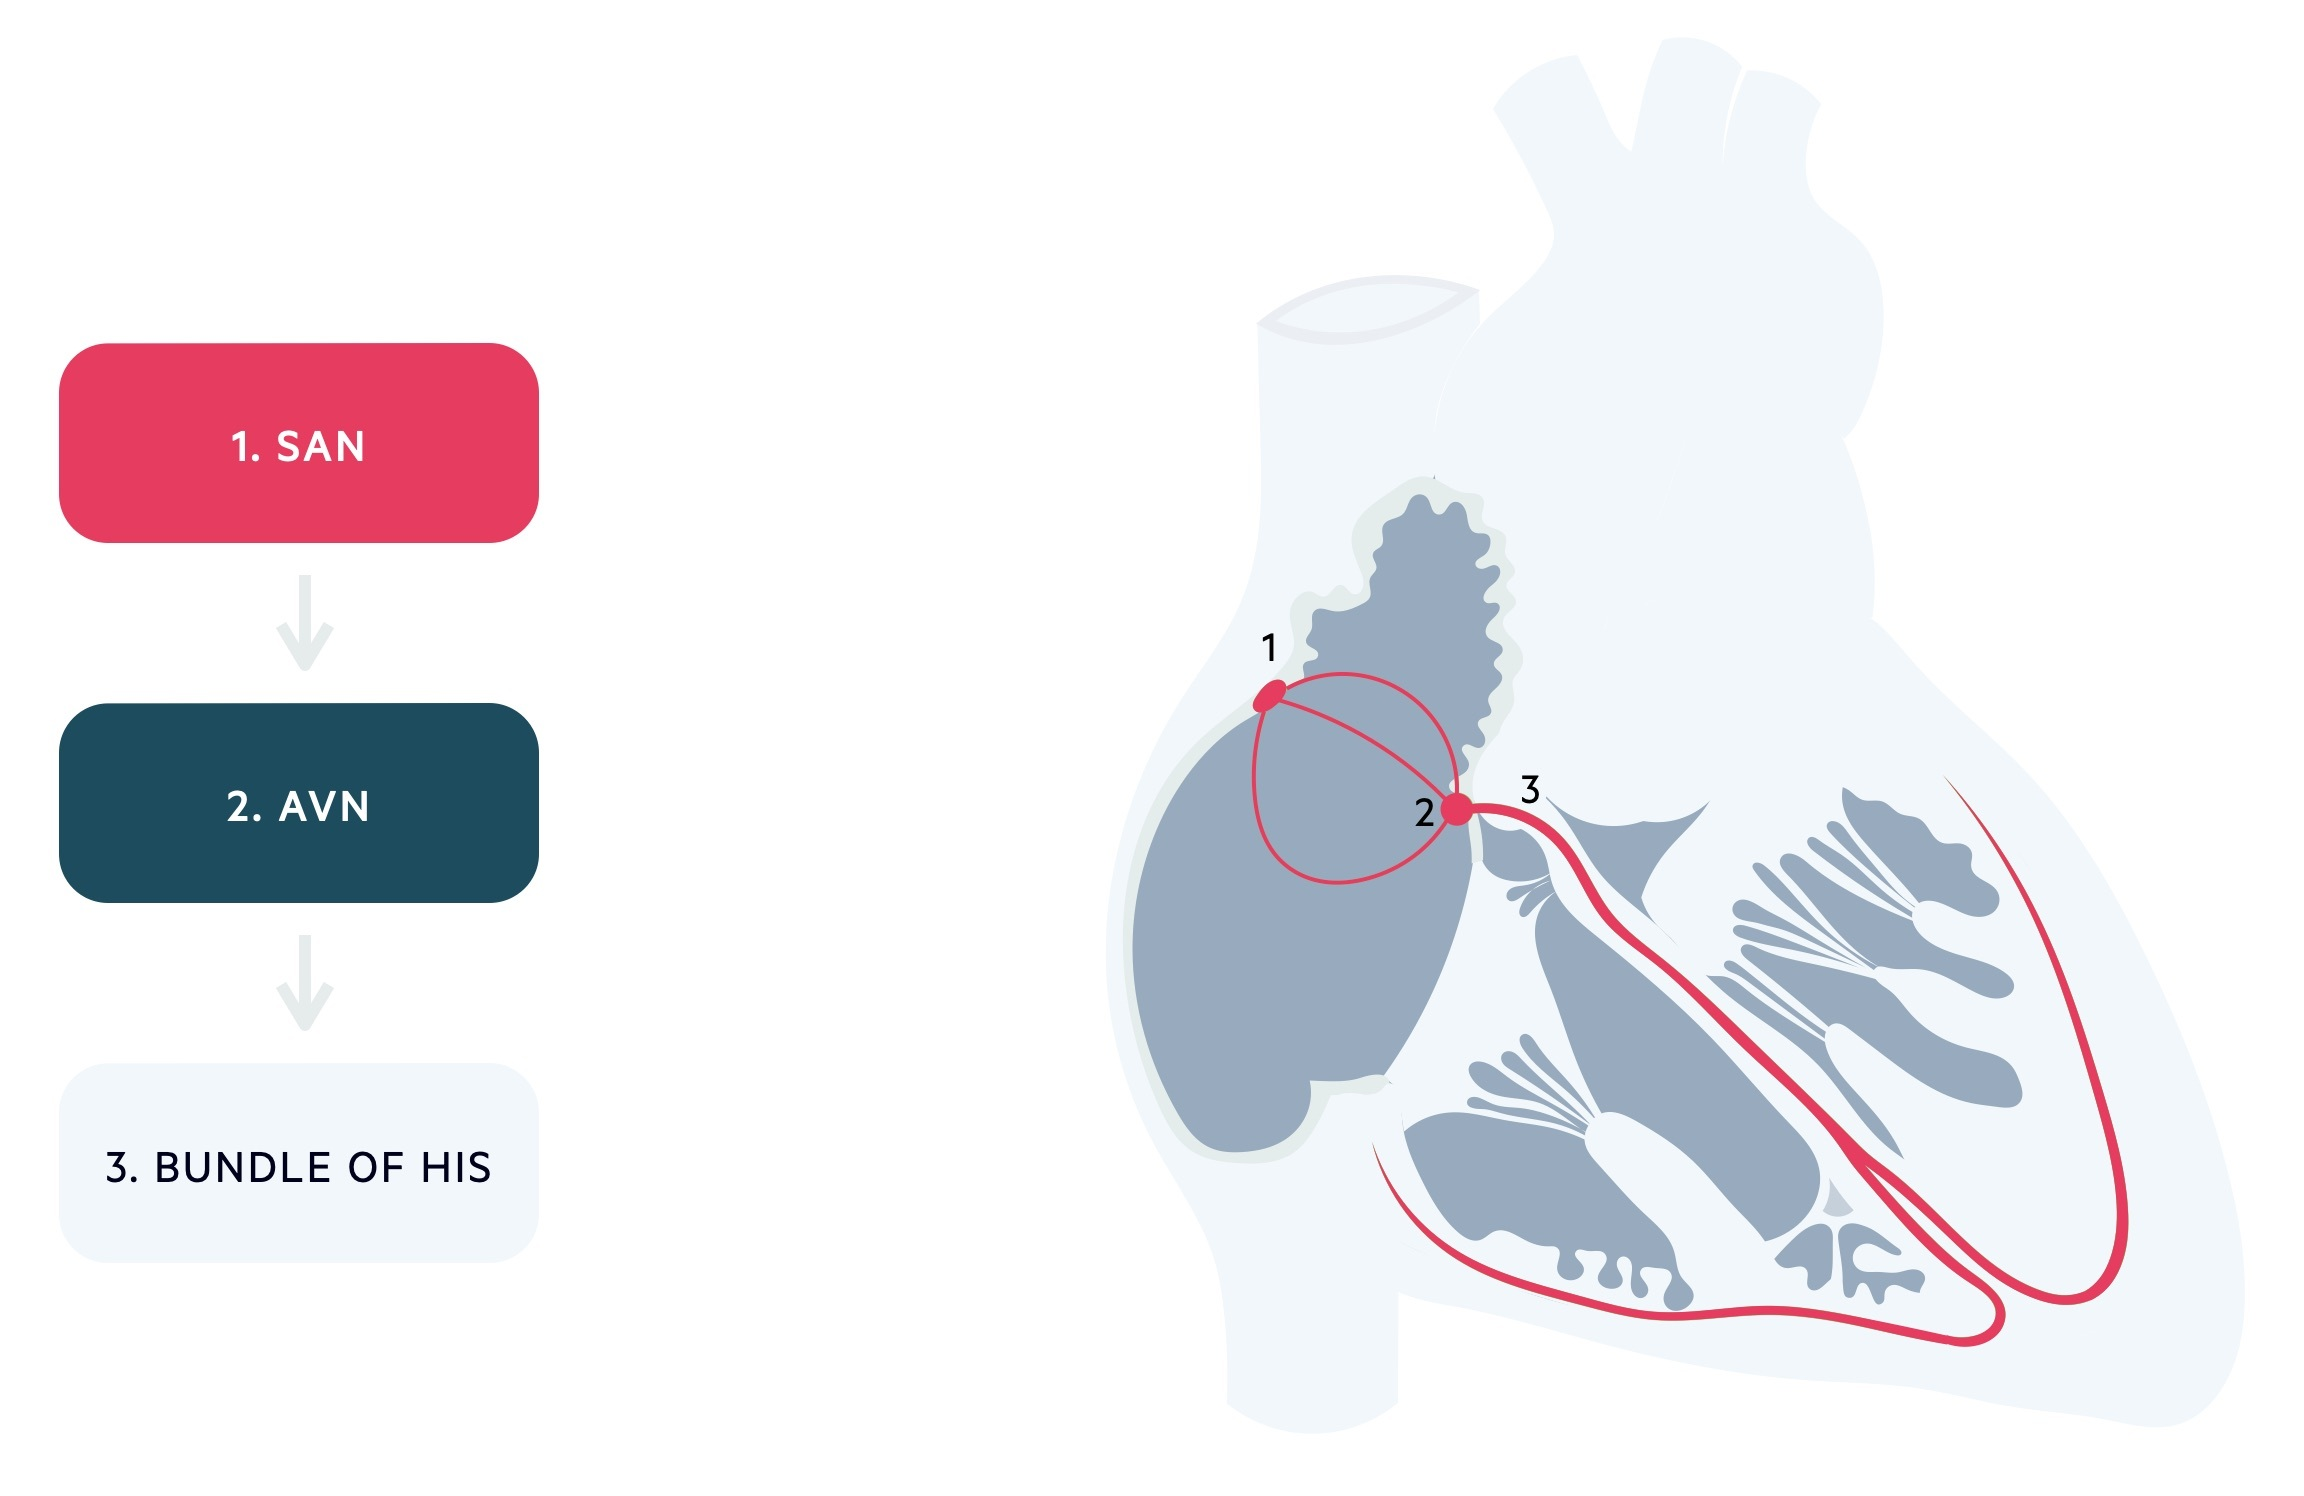 Conduction pathways of the heart